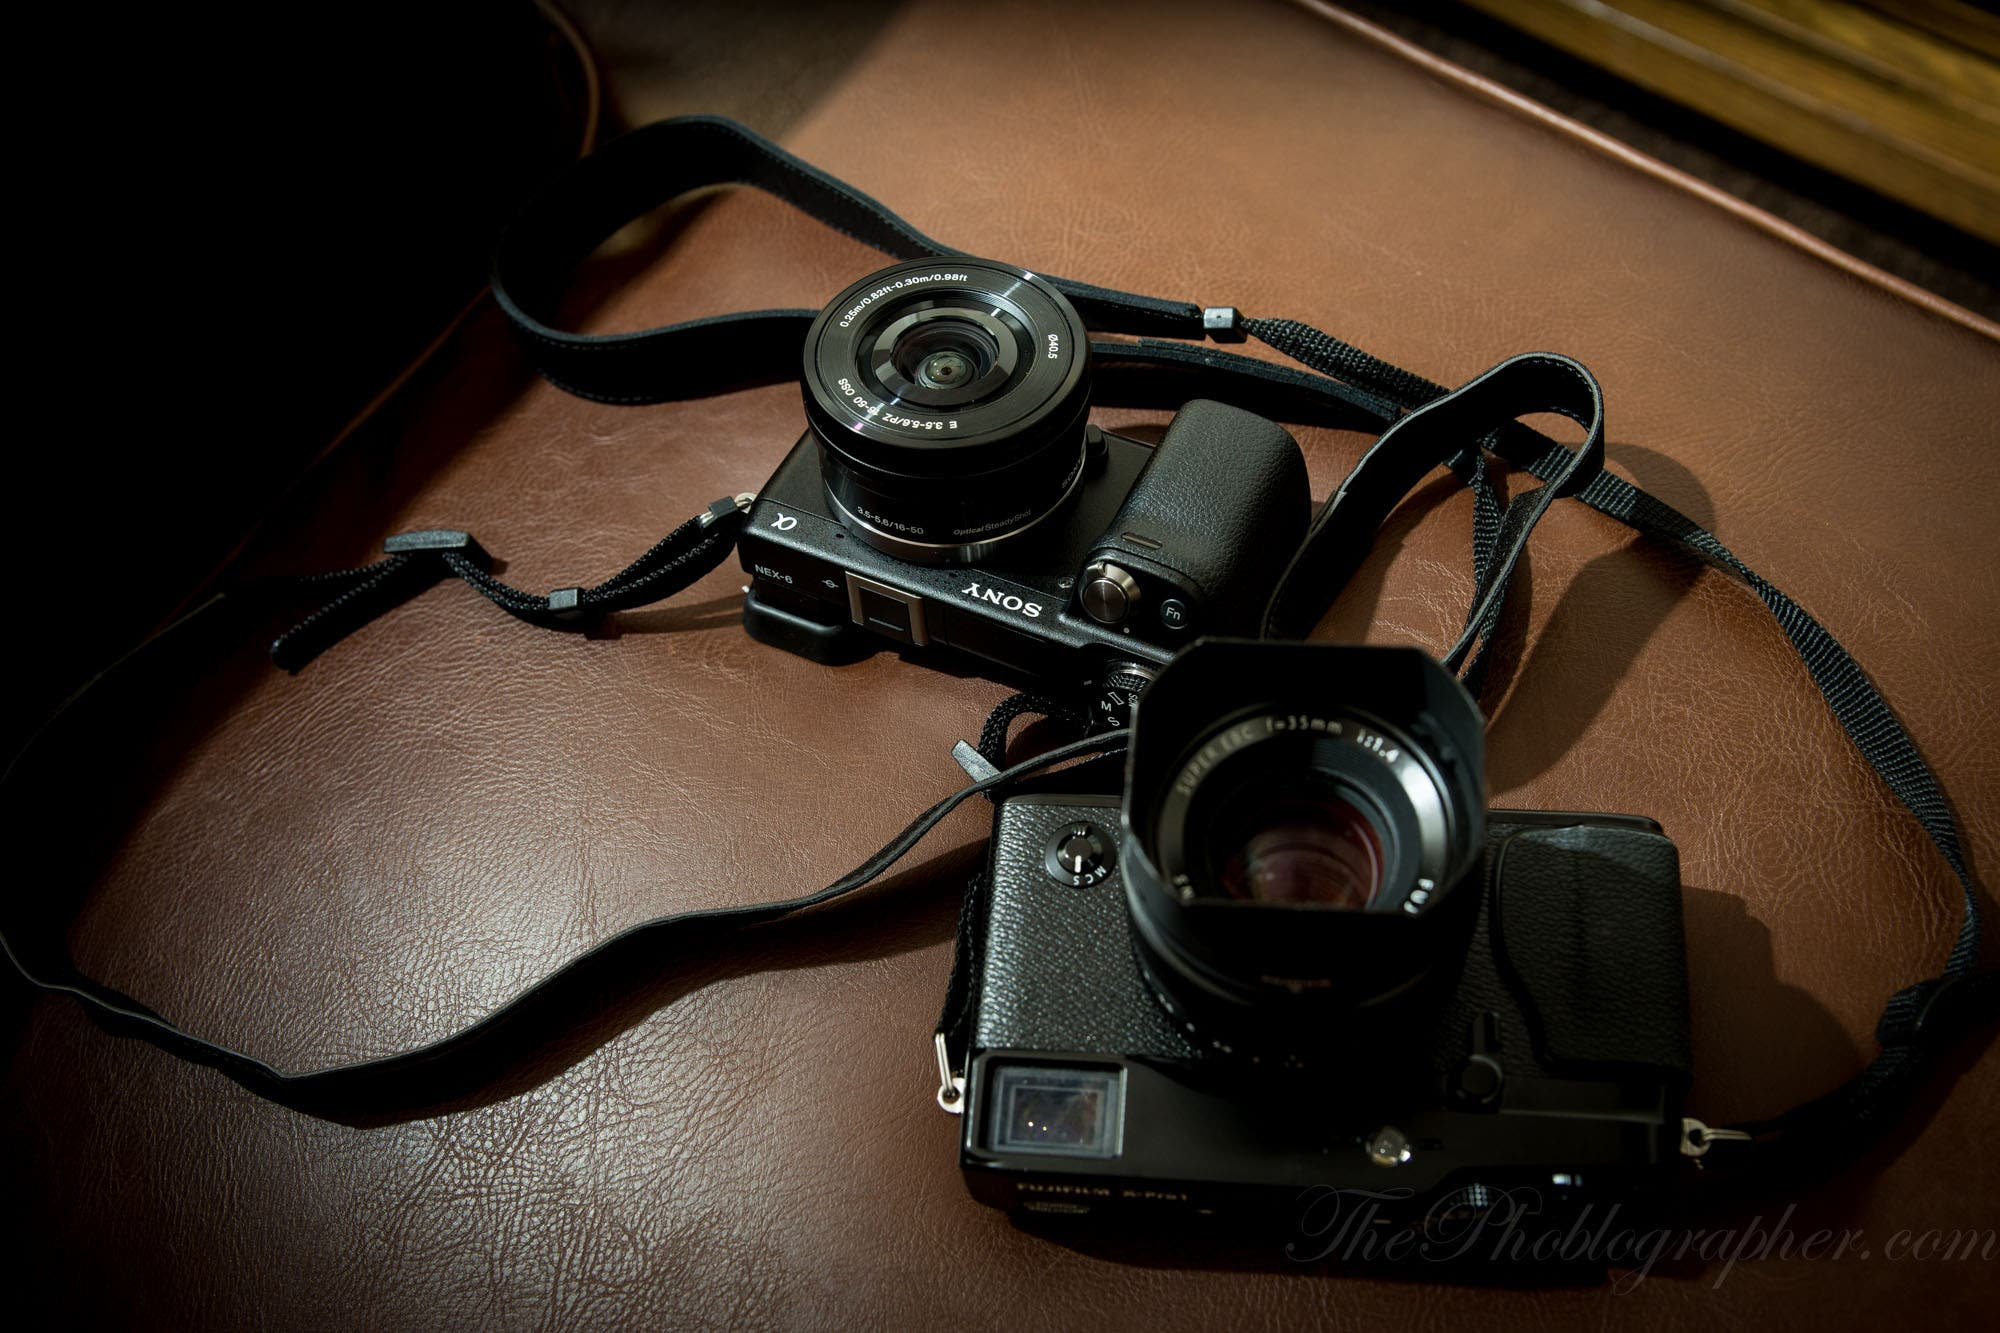 Quick Informal High ISO Comparison: Fujifilm X Pro 1 and Sony NEX 6